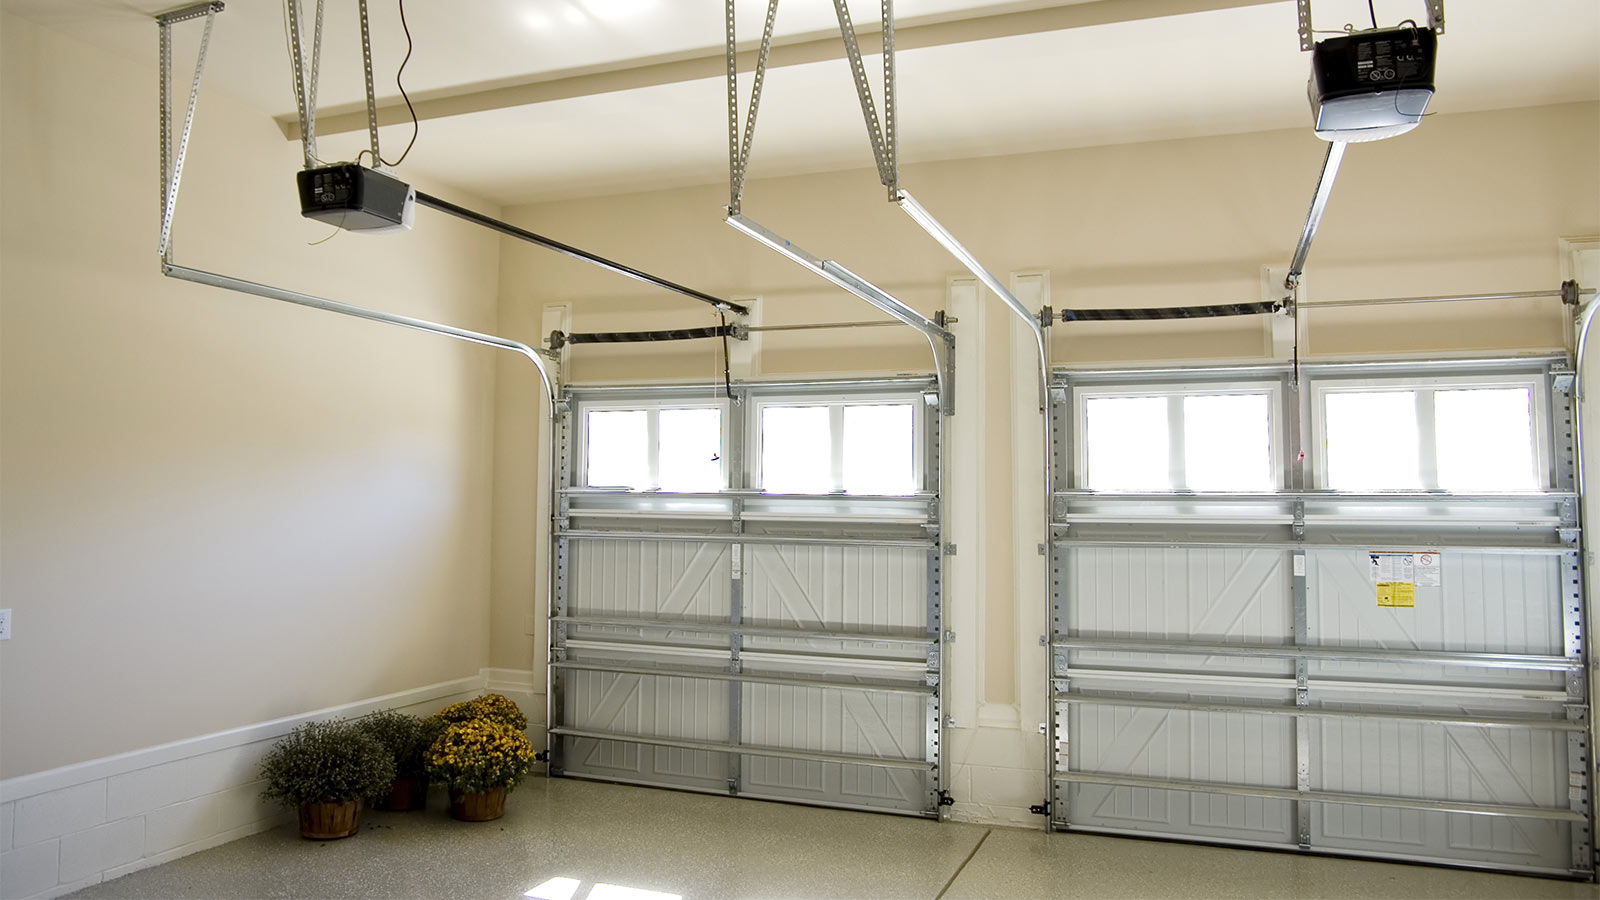 Sectional Garage Doors from Fire Shutters Harlow suppliers.